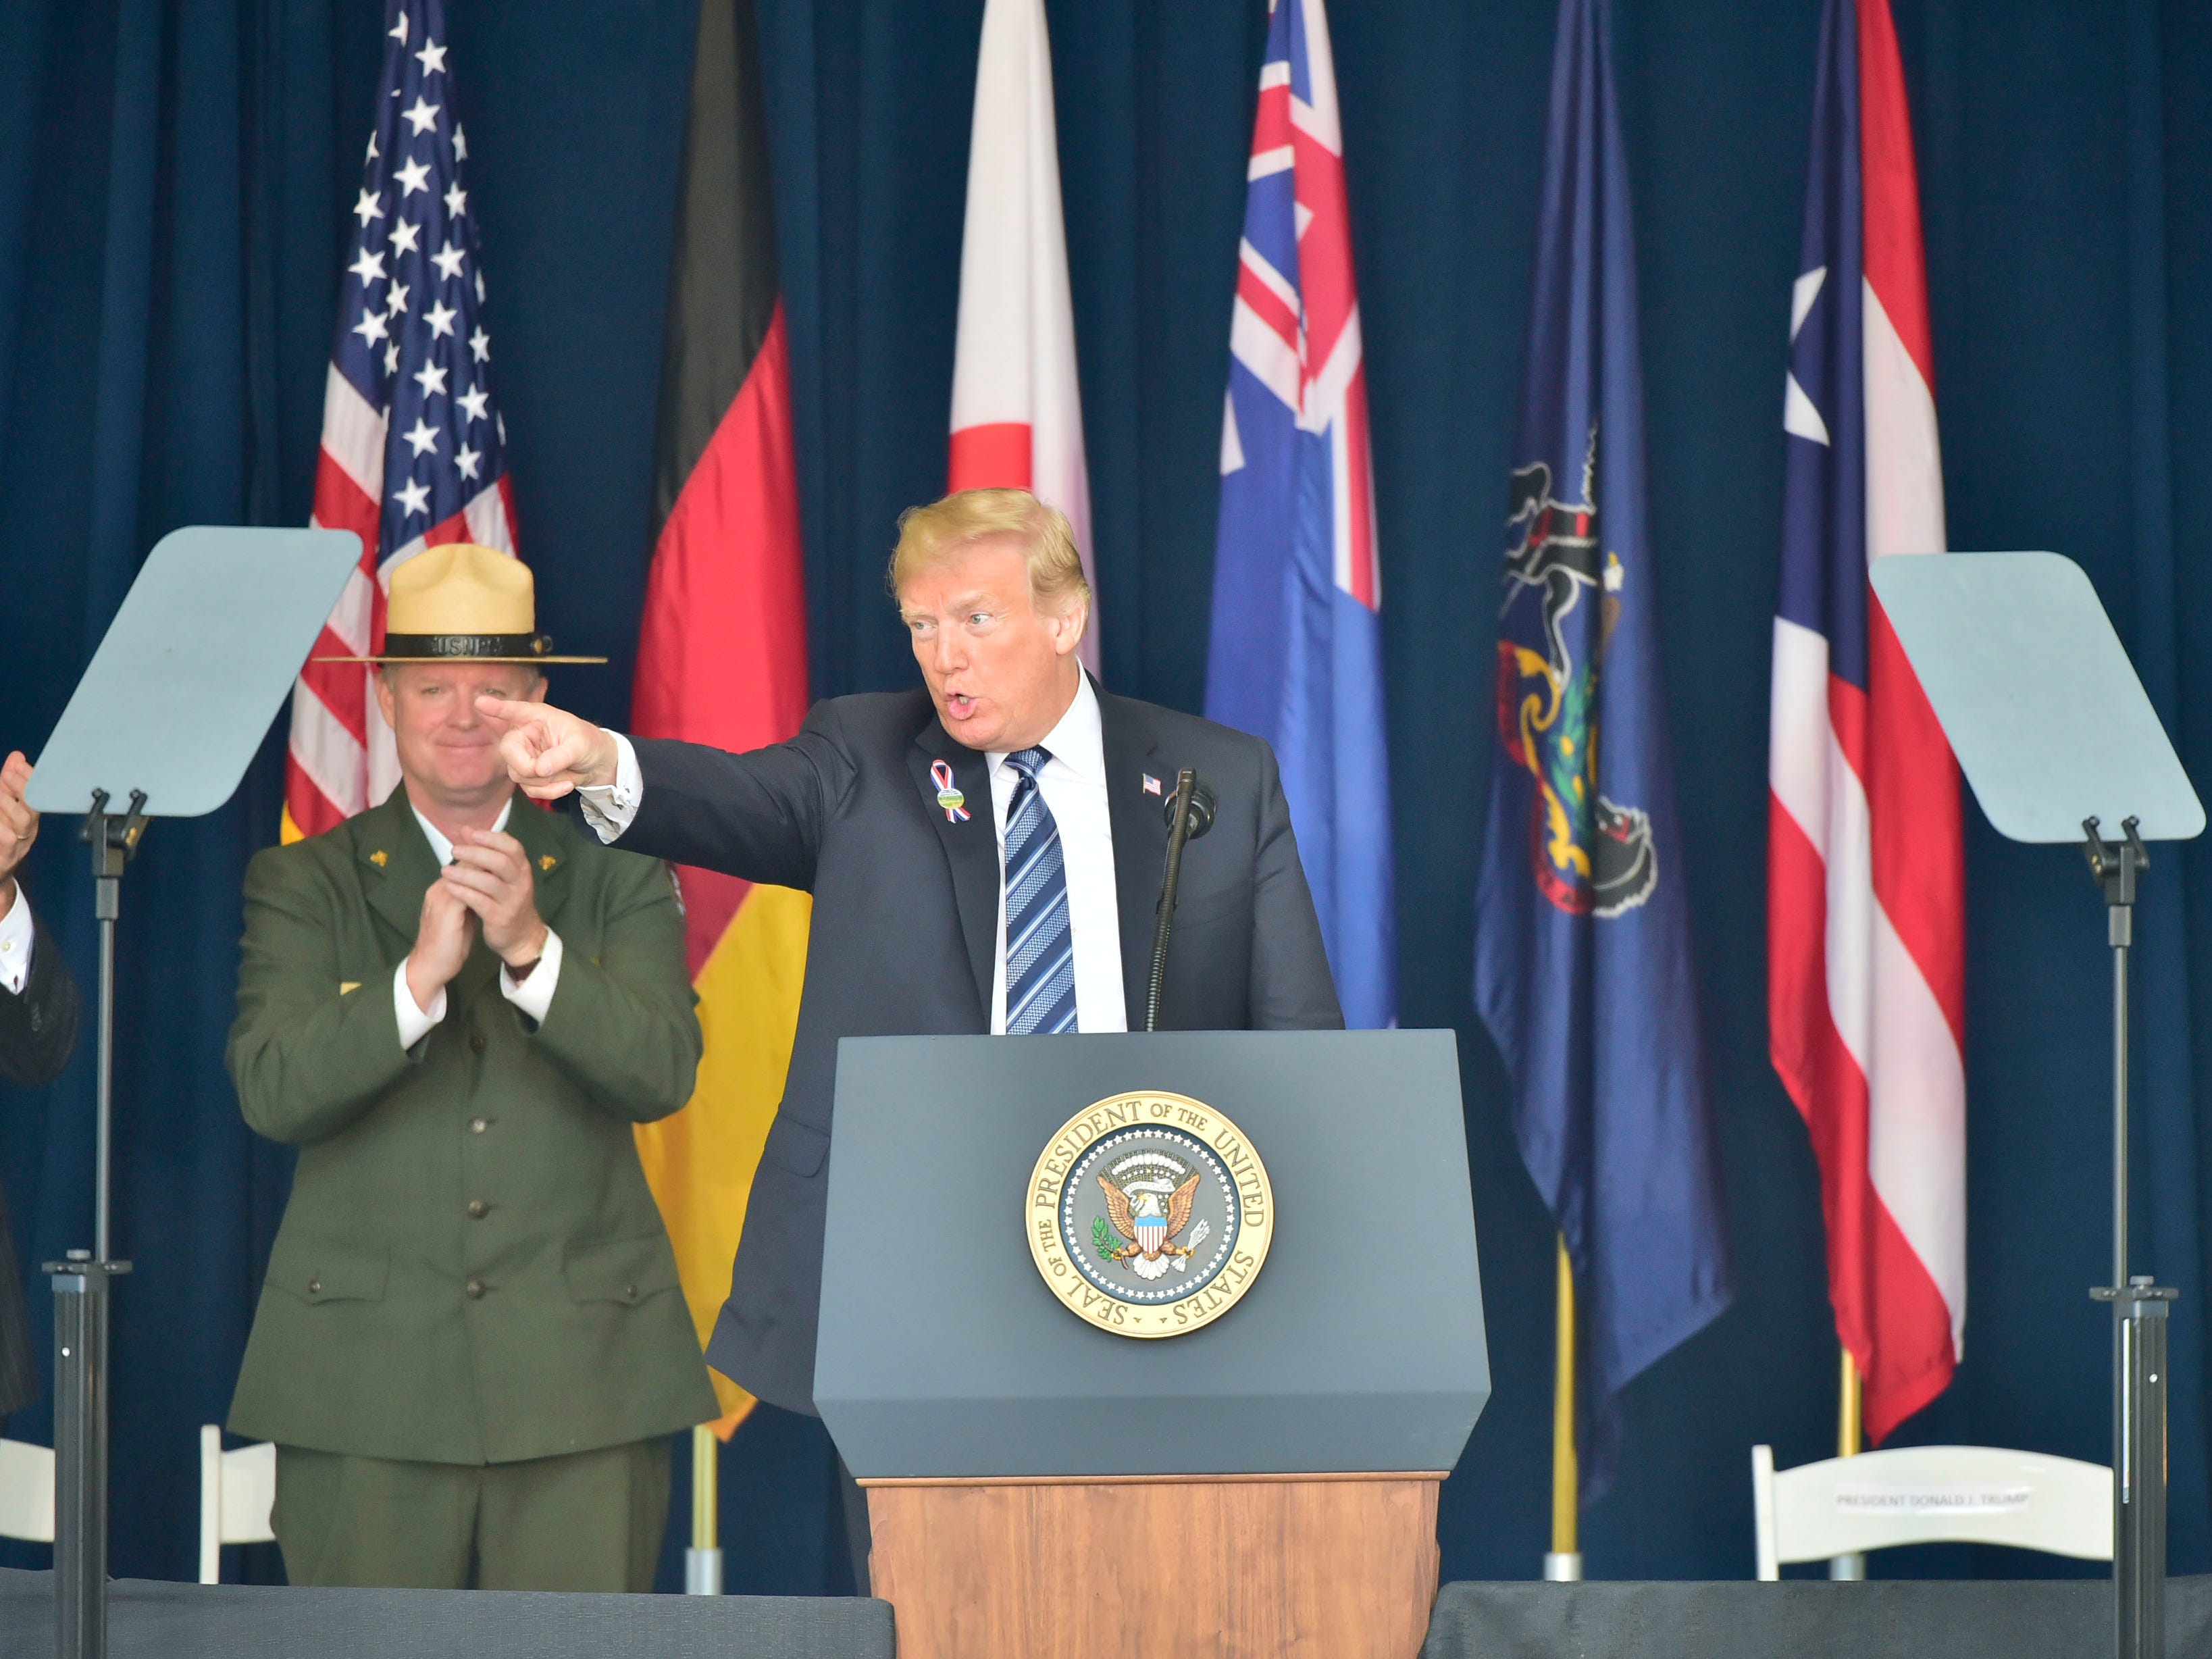 U.S. President Donald Trump speaks to crowd during the 9/11 recognition ceremony. The Flight 93 National Memorial's 17th Annual September 11 ceremony is being held at the Memorial Plaza in Shanksville, Pa.